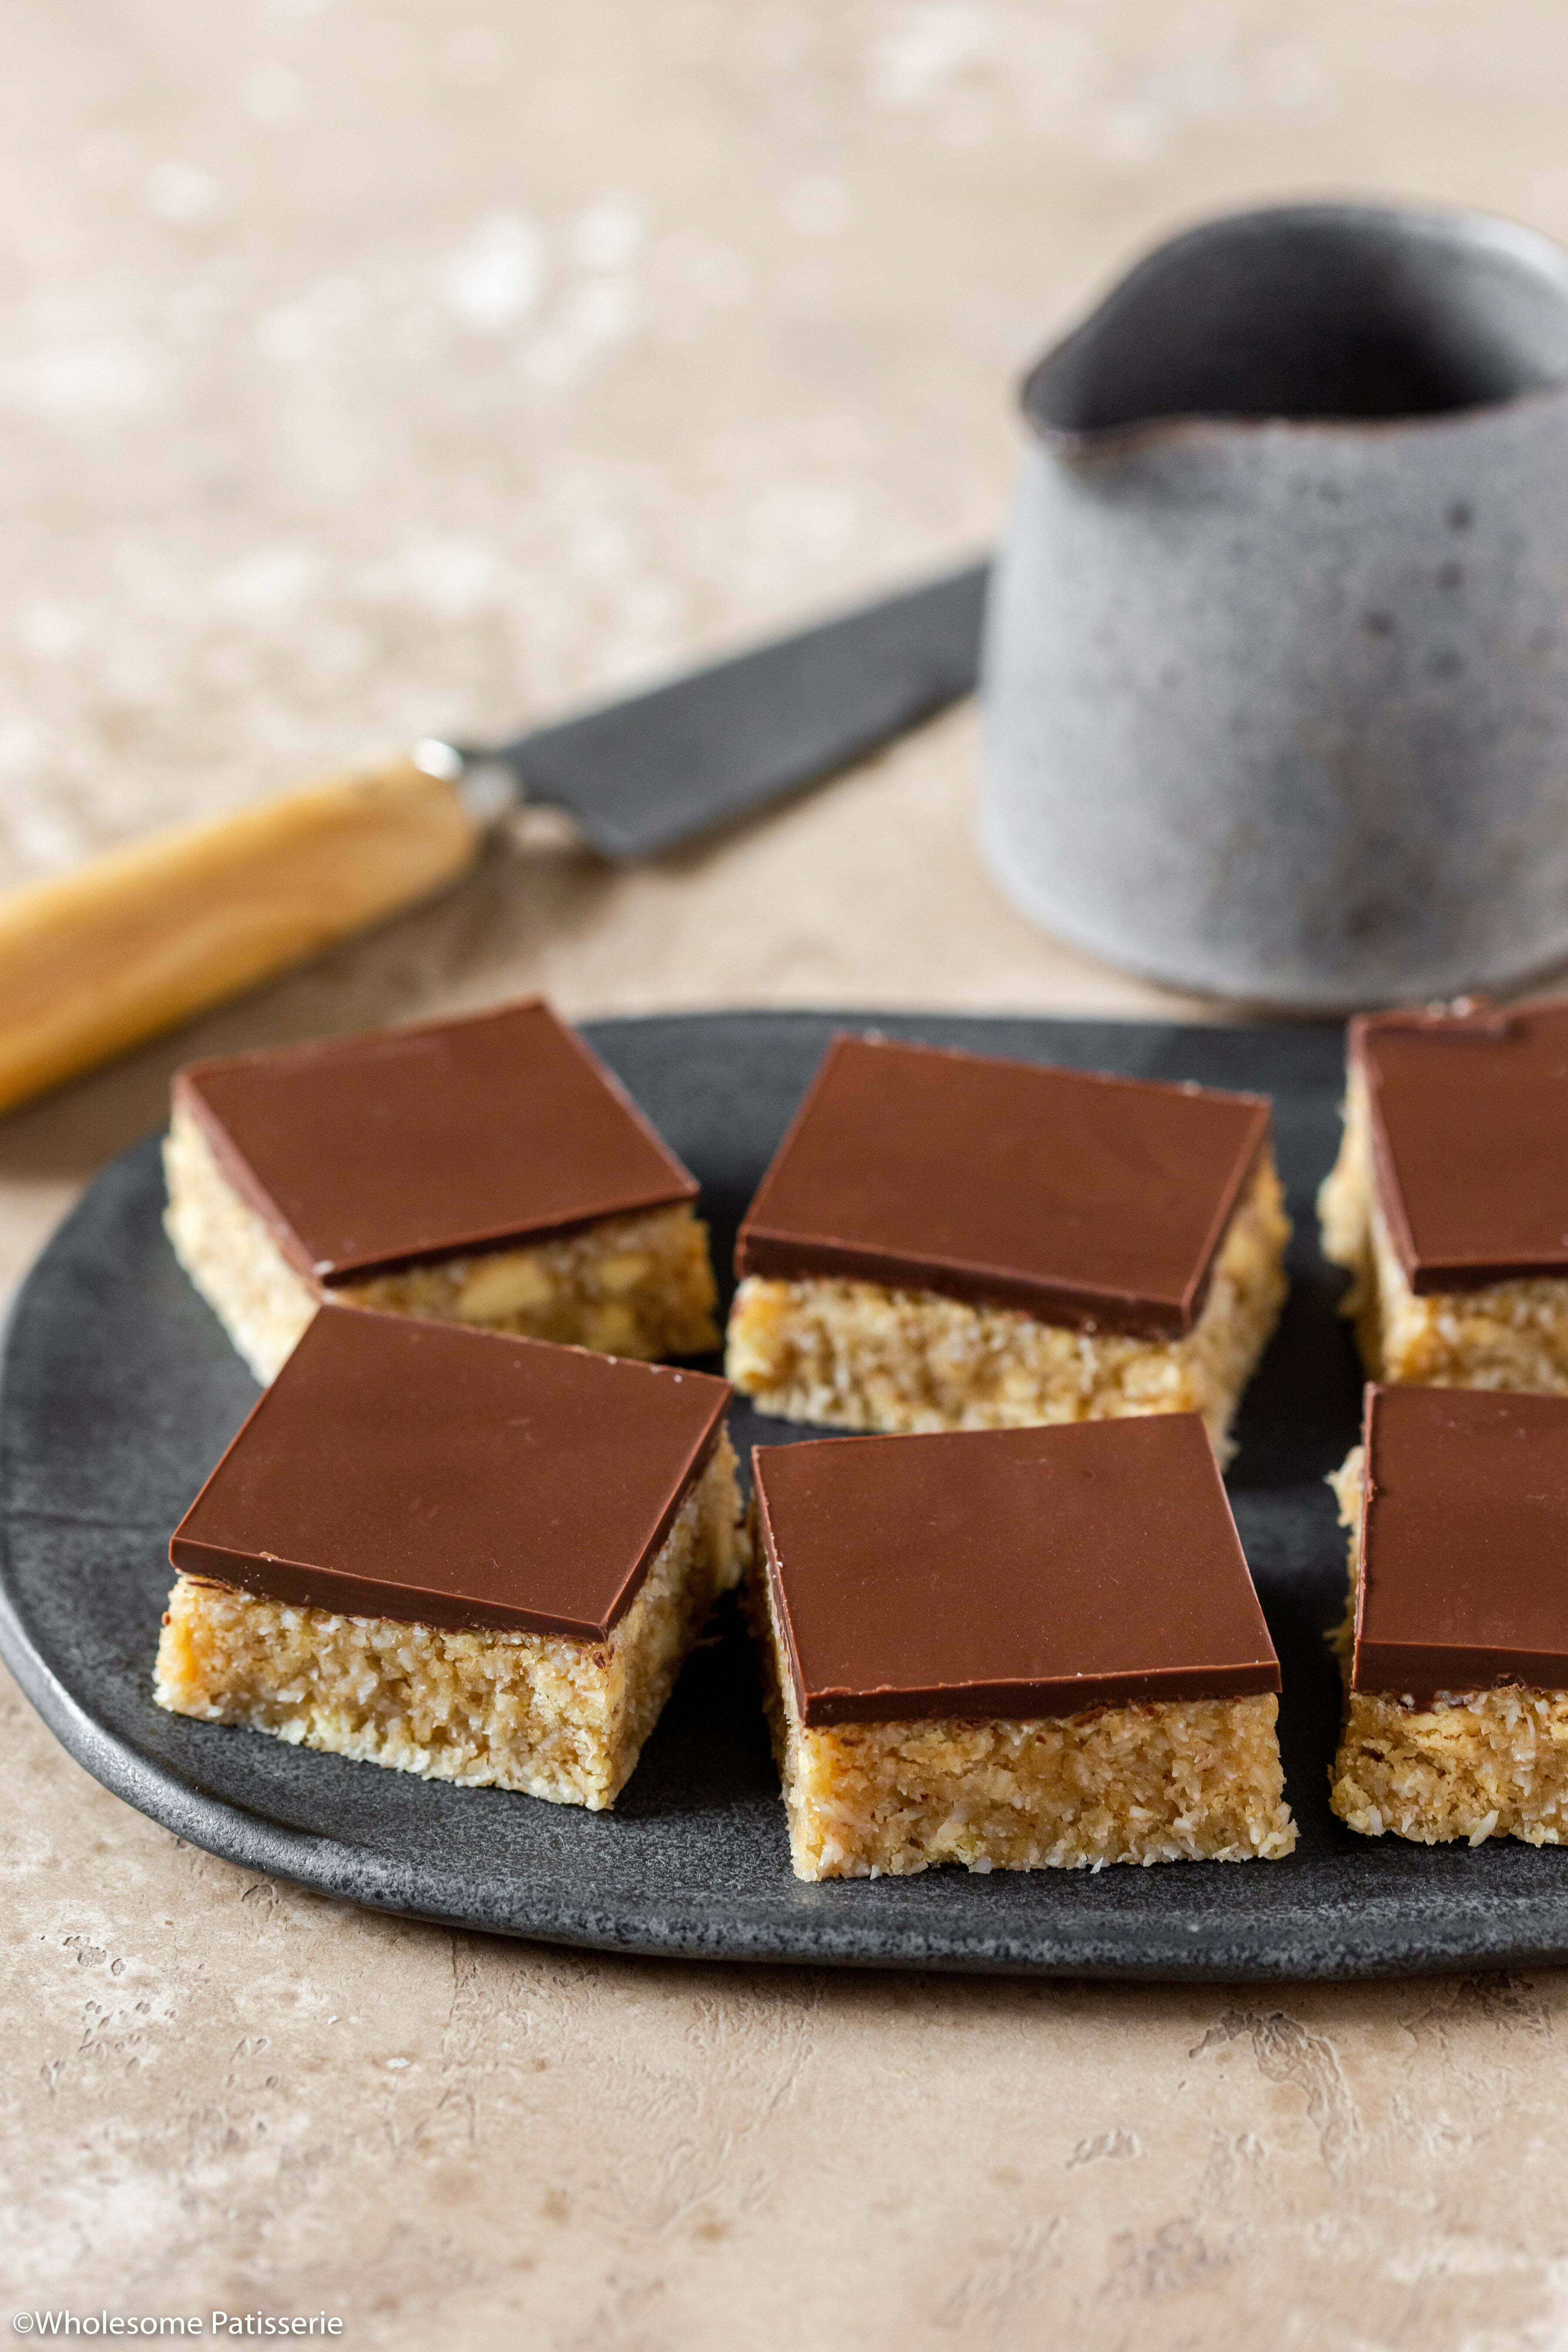 Cheat's Caramel Slice (Dairy & Gluten Free)! Homemade dairy free caramel sauce mixed through a biscuit base and topped with melted dark chocolate! 2 layered caramel slice perfection!